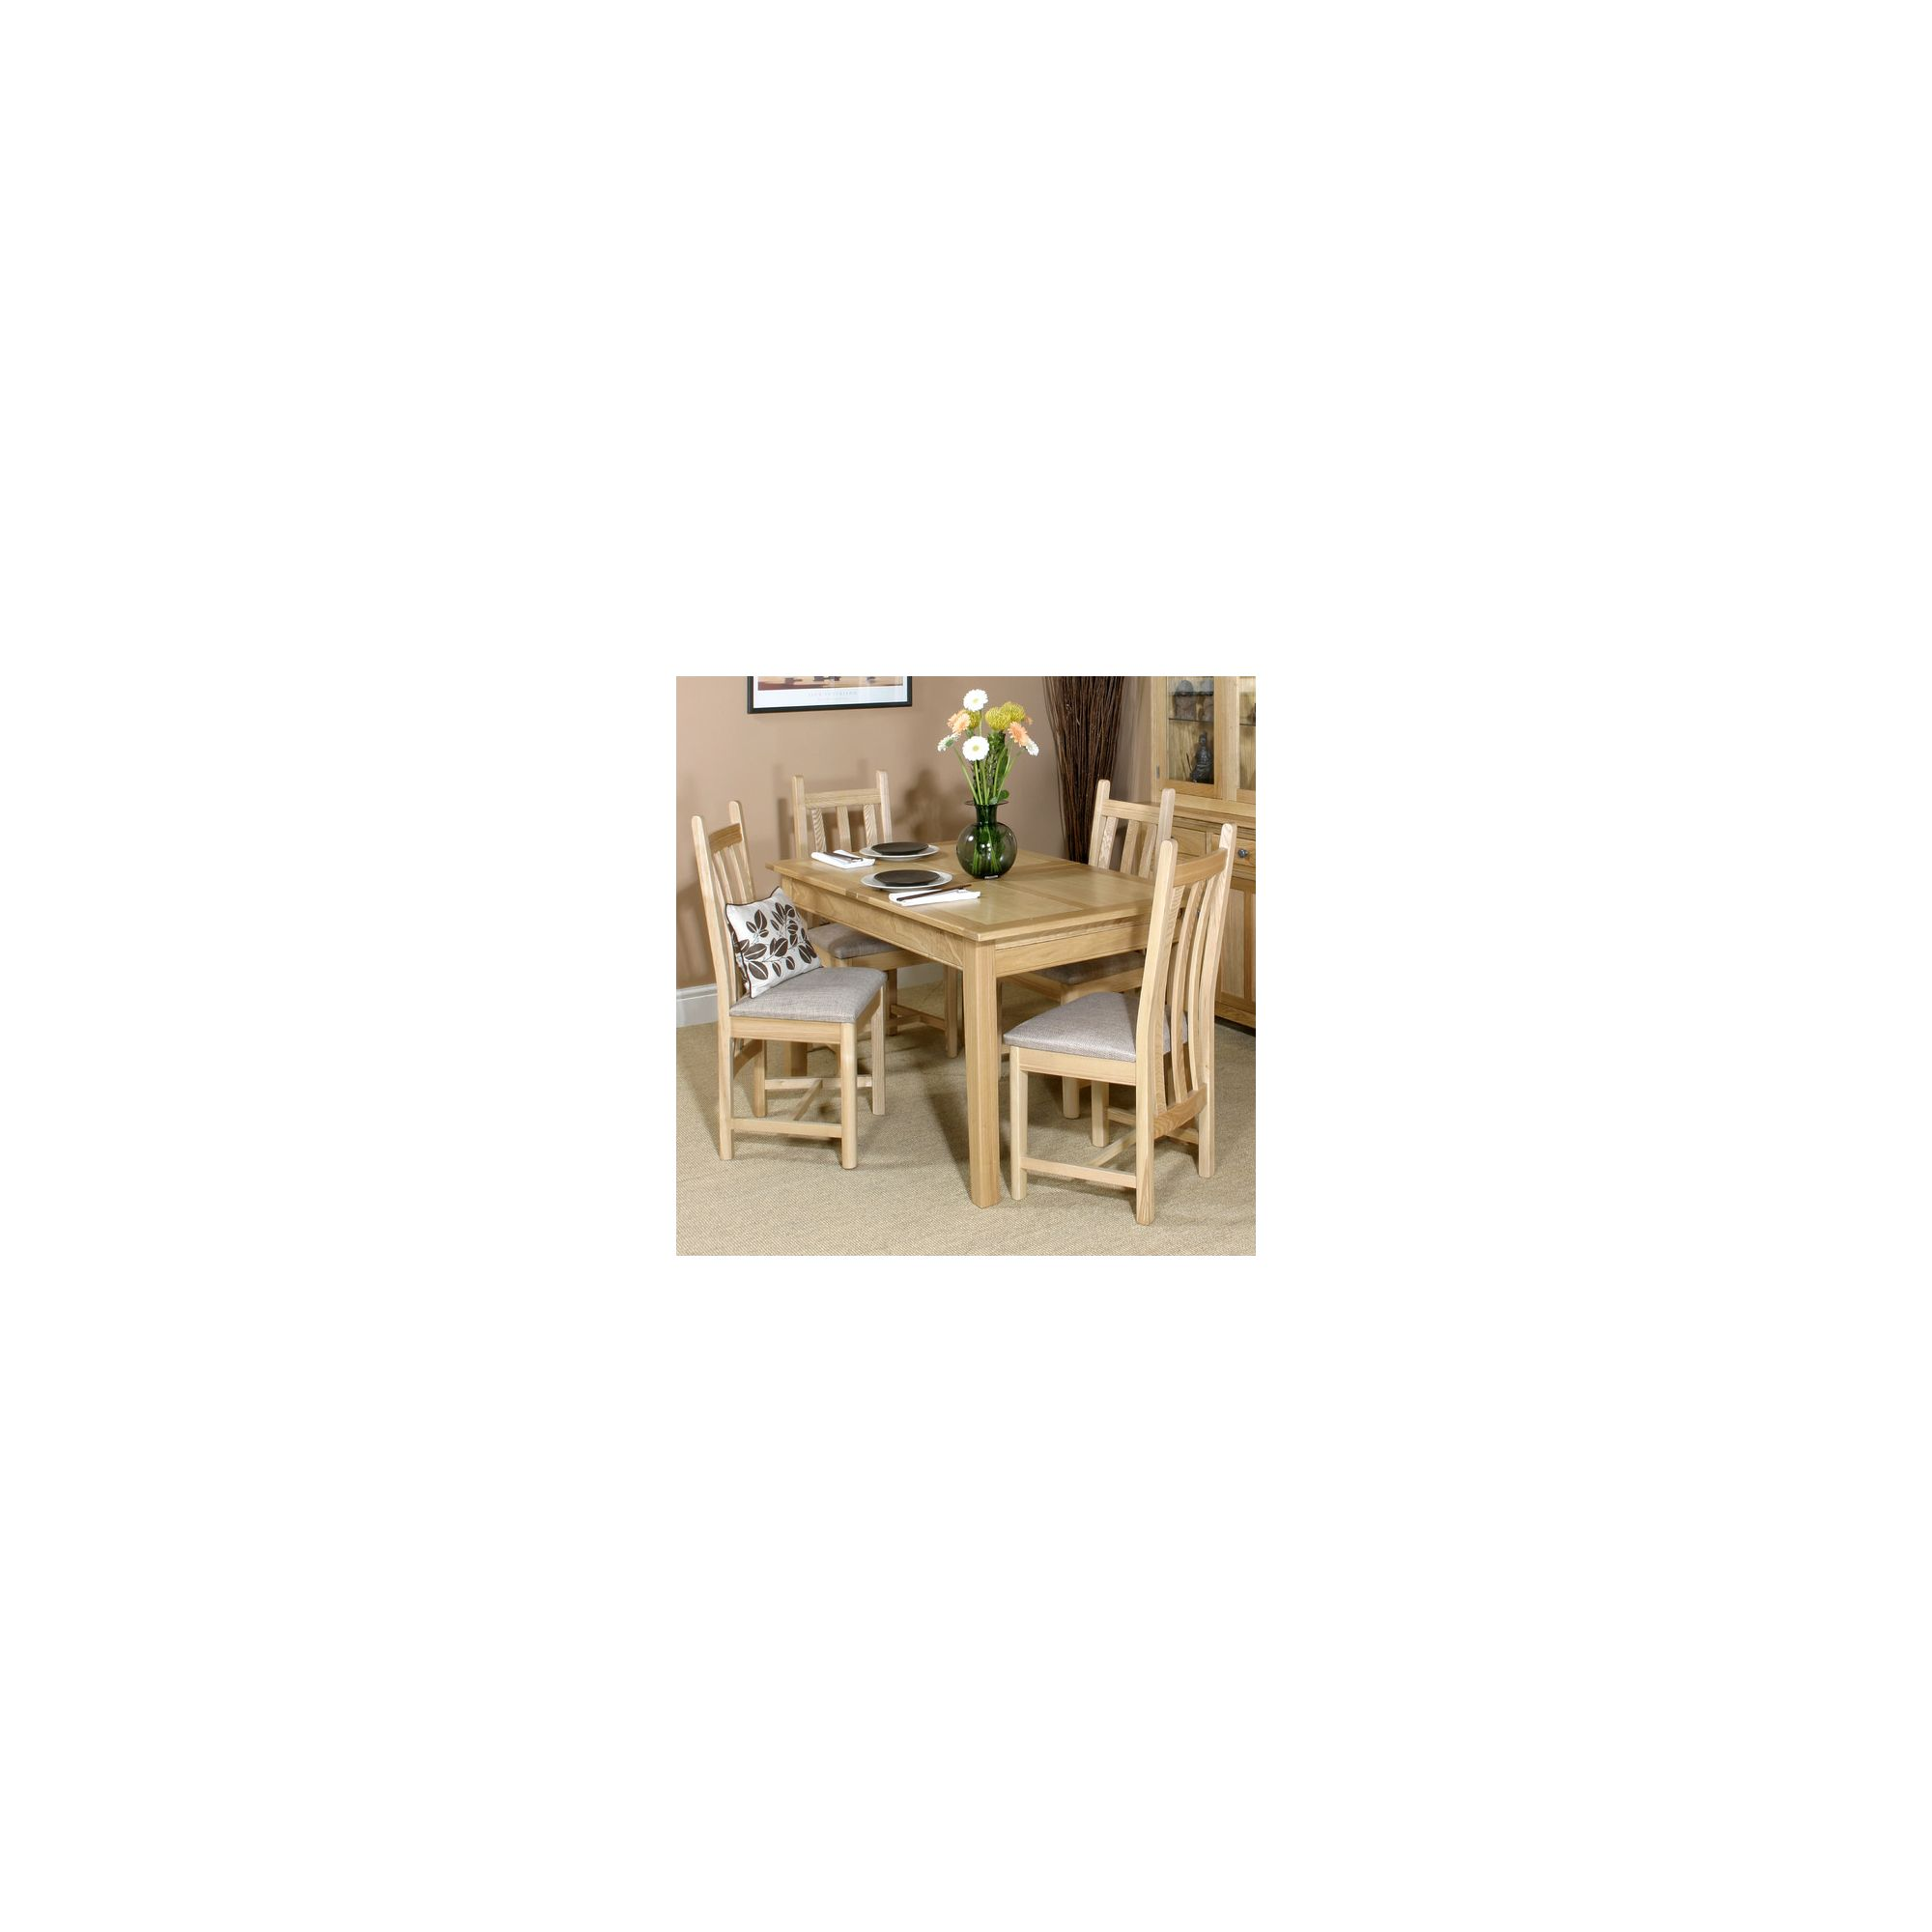 Other Old Charm Hertford 5 Piece Extending Dining Table Set